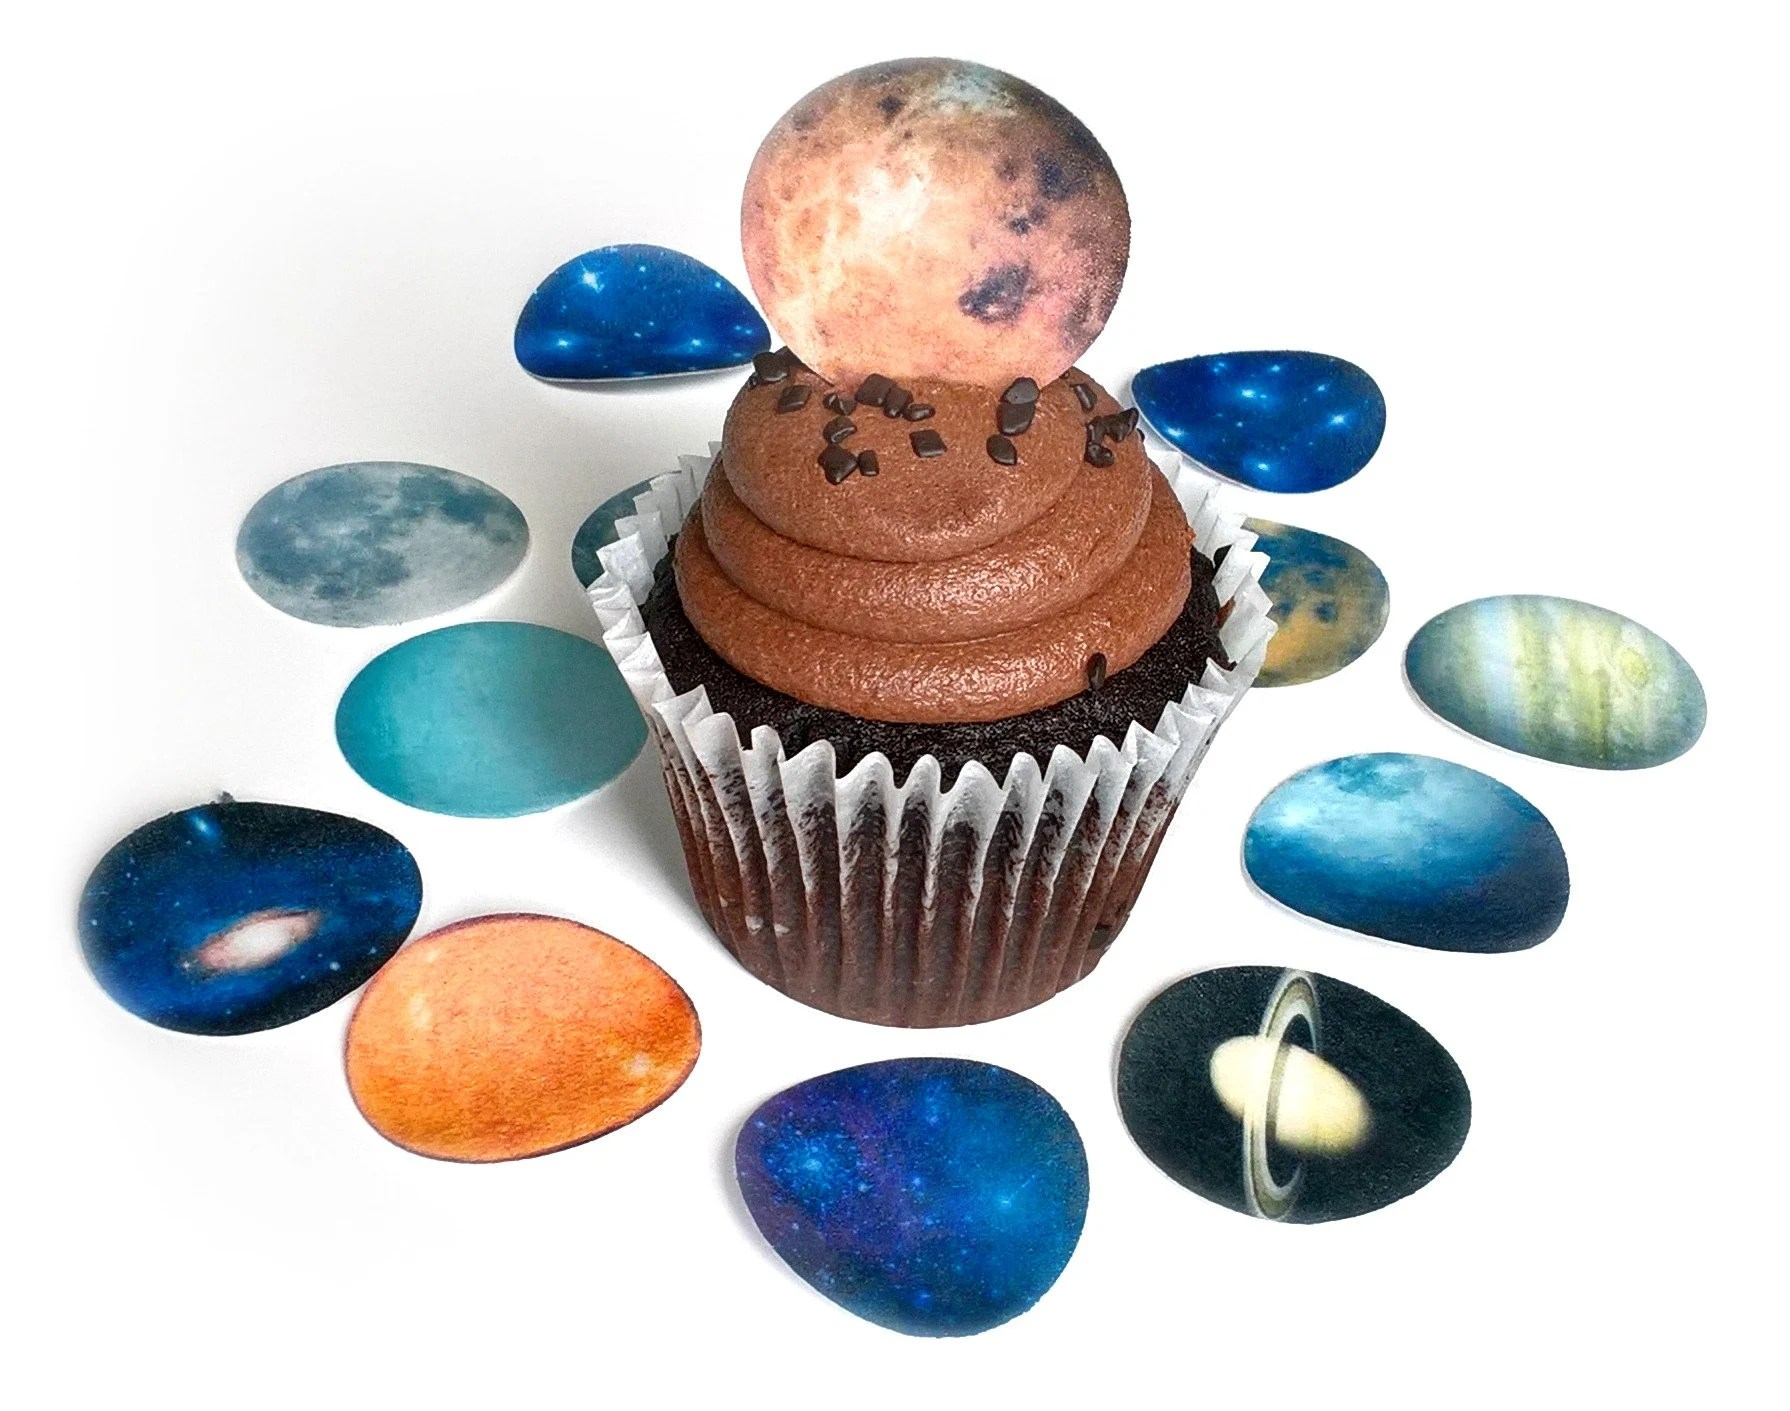 12 Solar System Planets Universe Galaxy Stars Edible Image